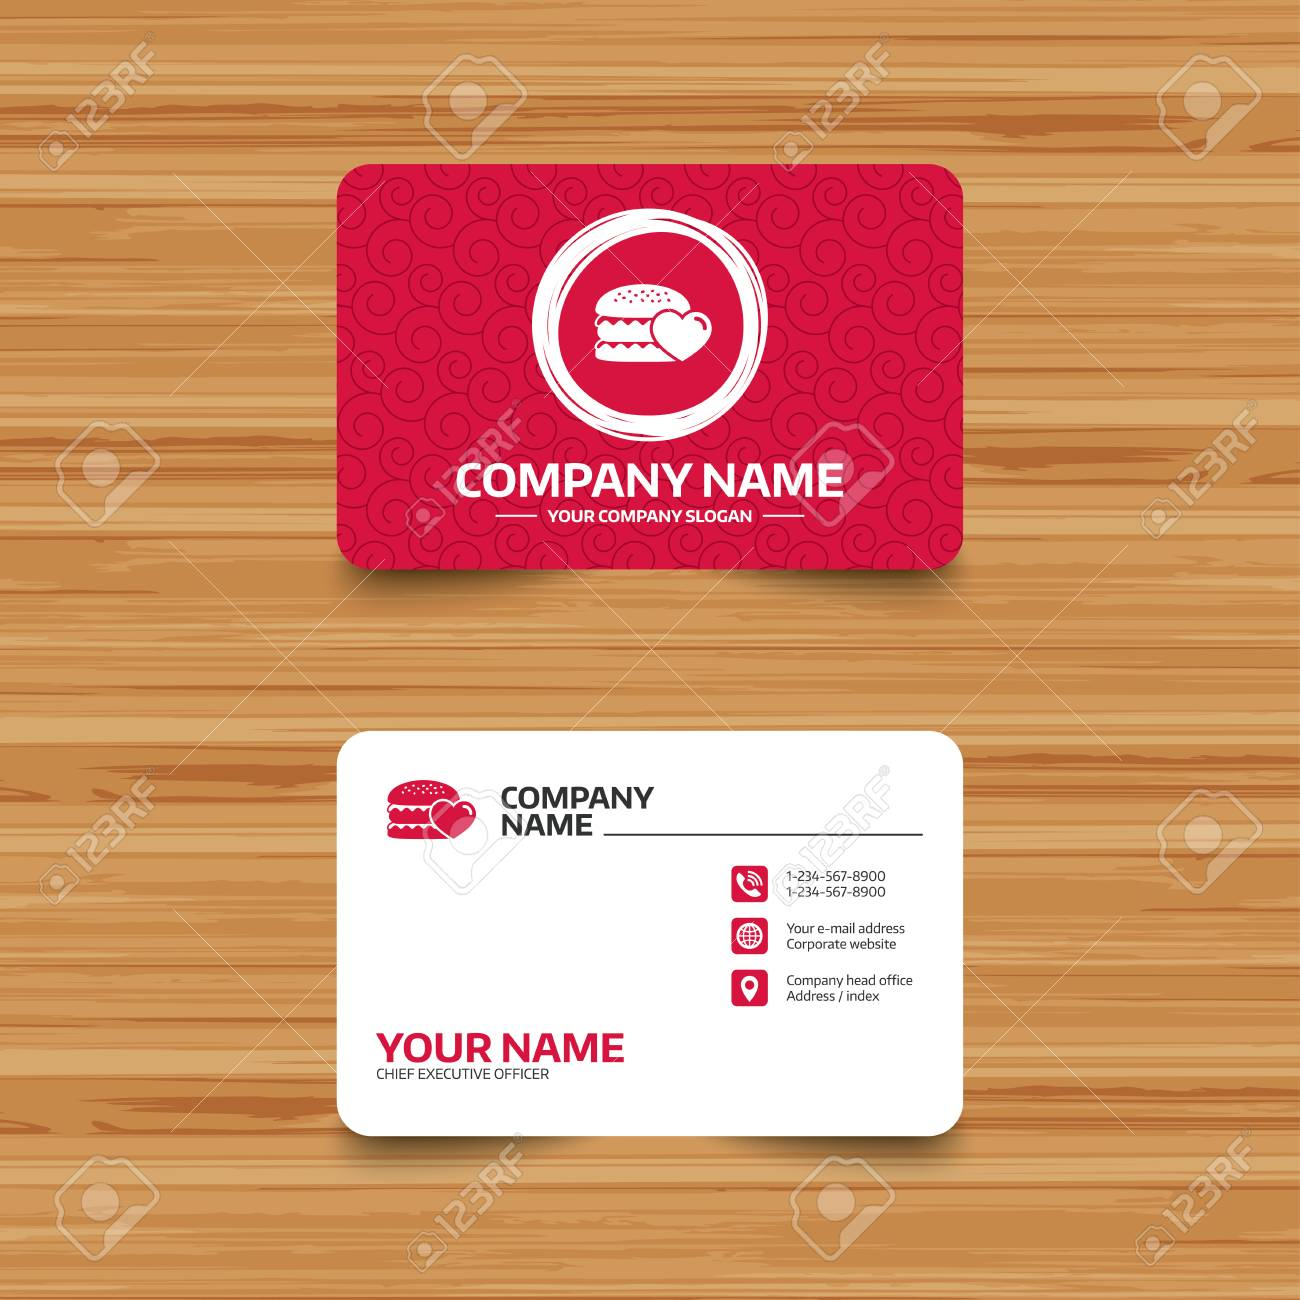 Business card template with texture hamburger icon burger food business card template with texture hamburger icon burger food symbol cheeseburger sandwich sign flashek Gallery